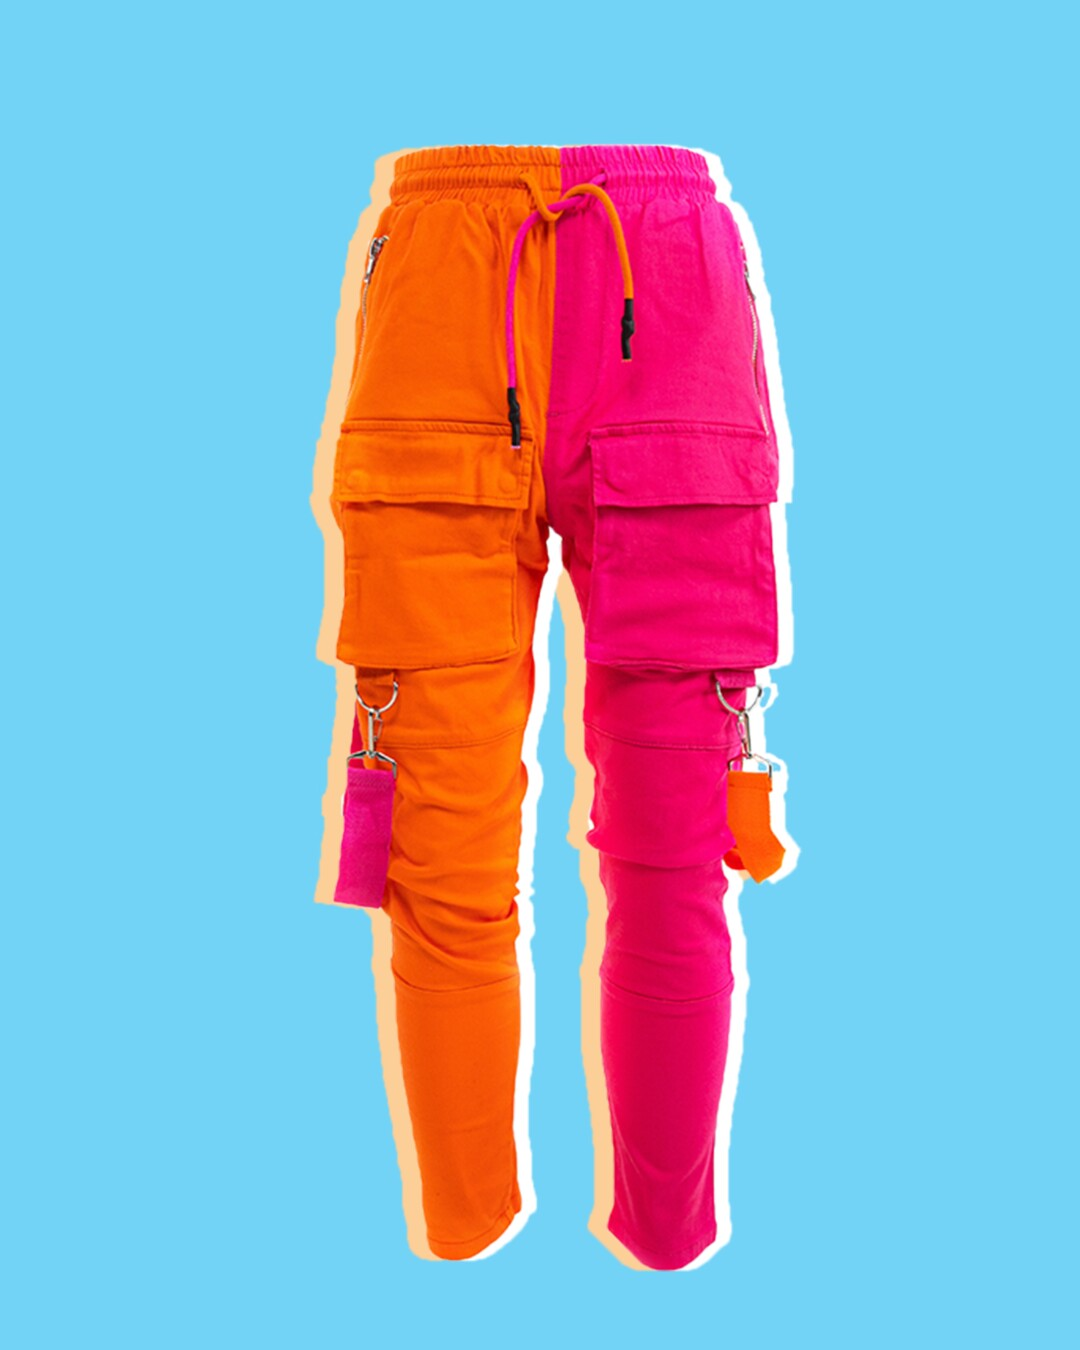 Bronx joggers from Sernes.